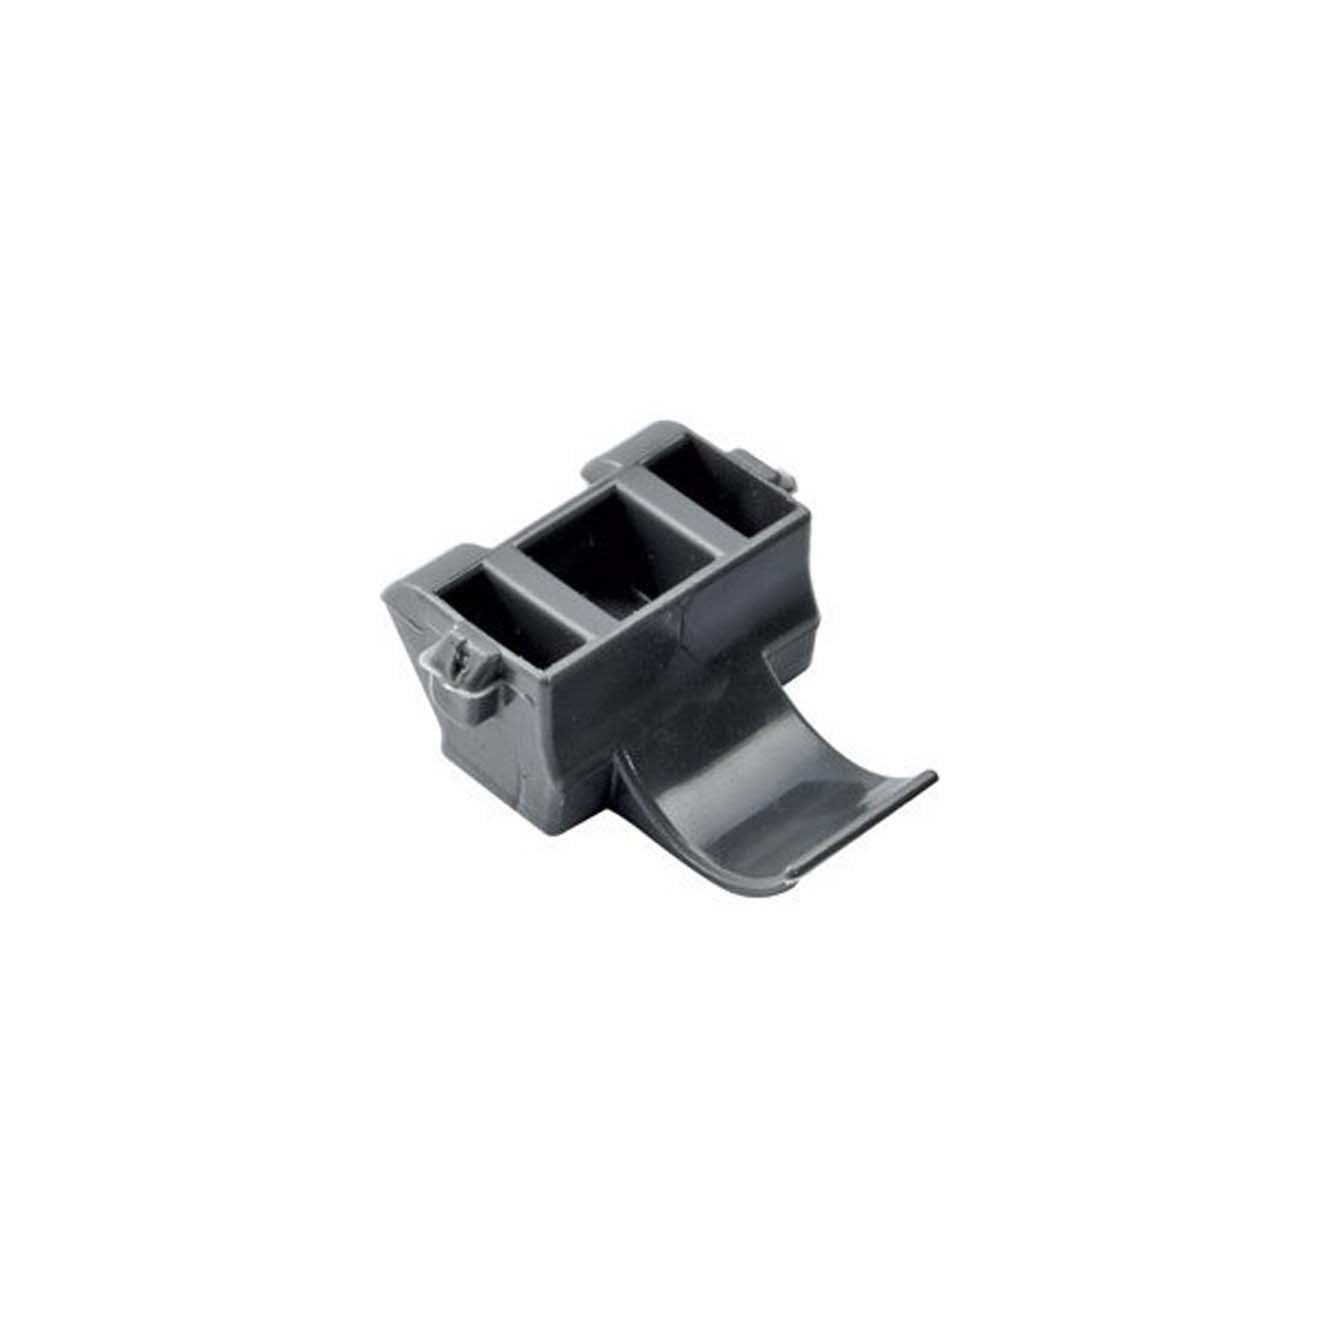 Blumotion Angle Restriction Clip For Compact Blumotion Hinges